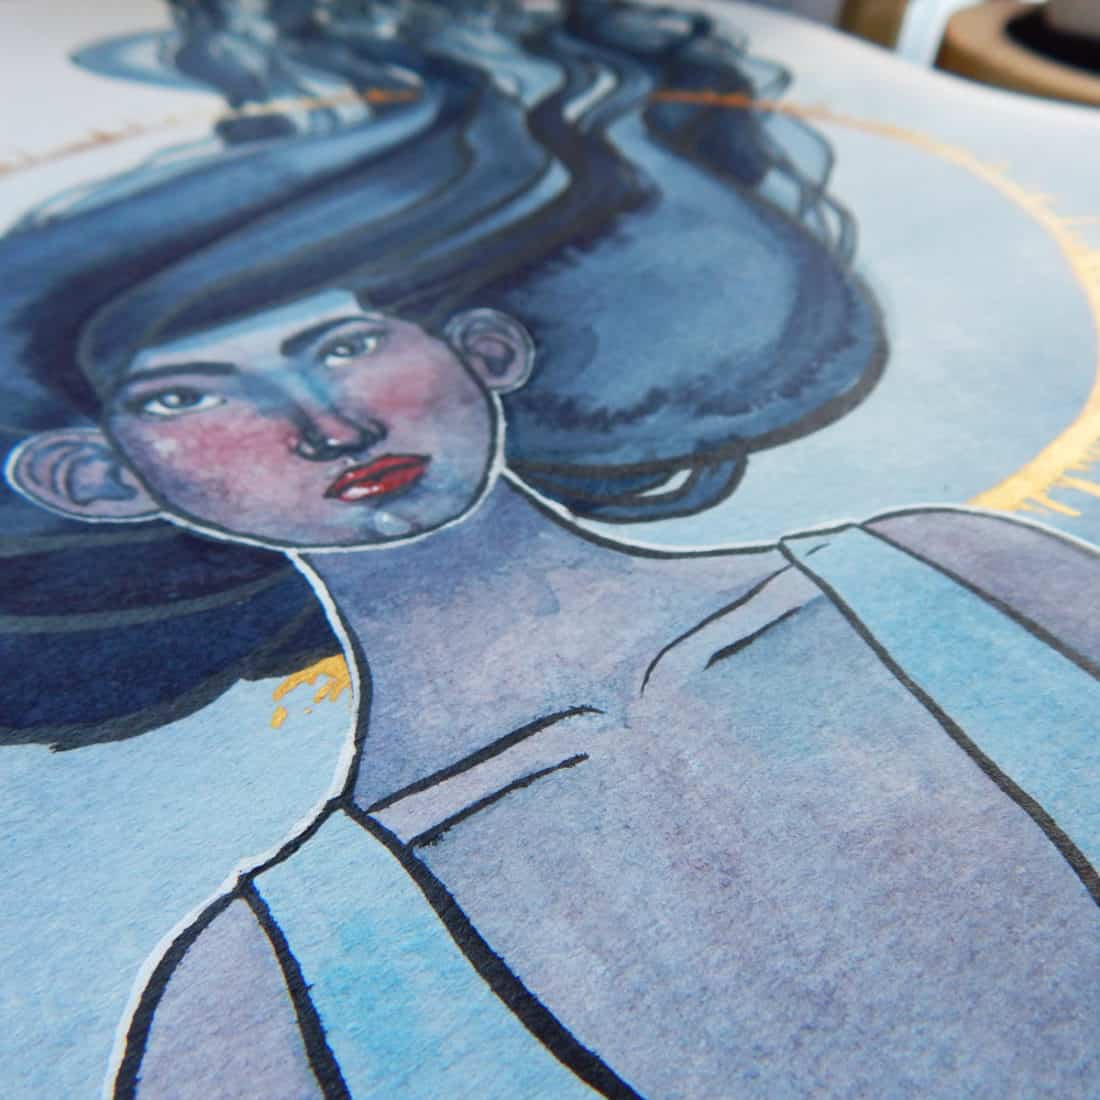 A completed watercolor painting of a woman with a blue color scheme, with gold metallic watercolor details in the background.